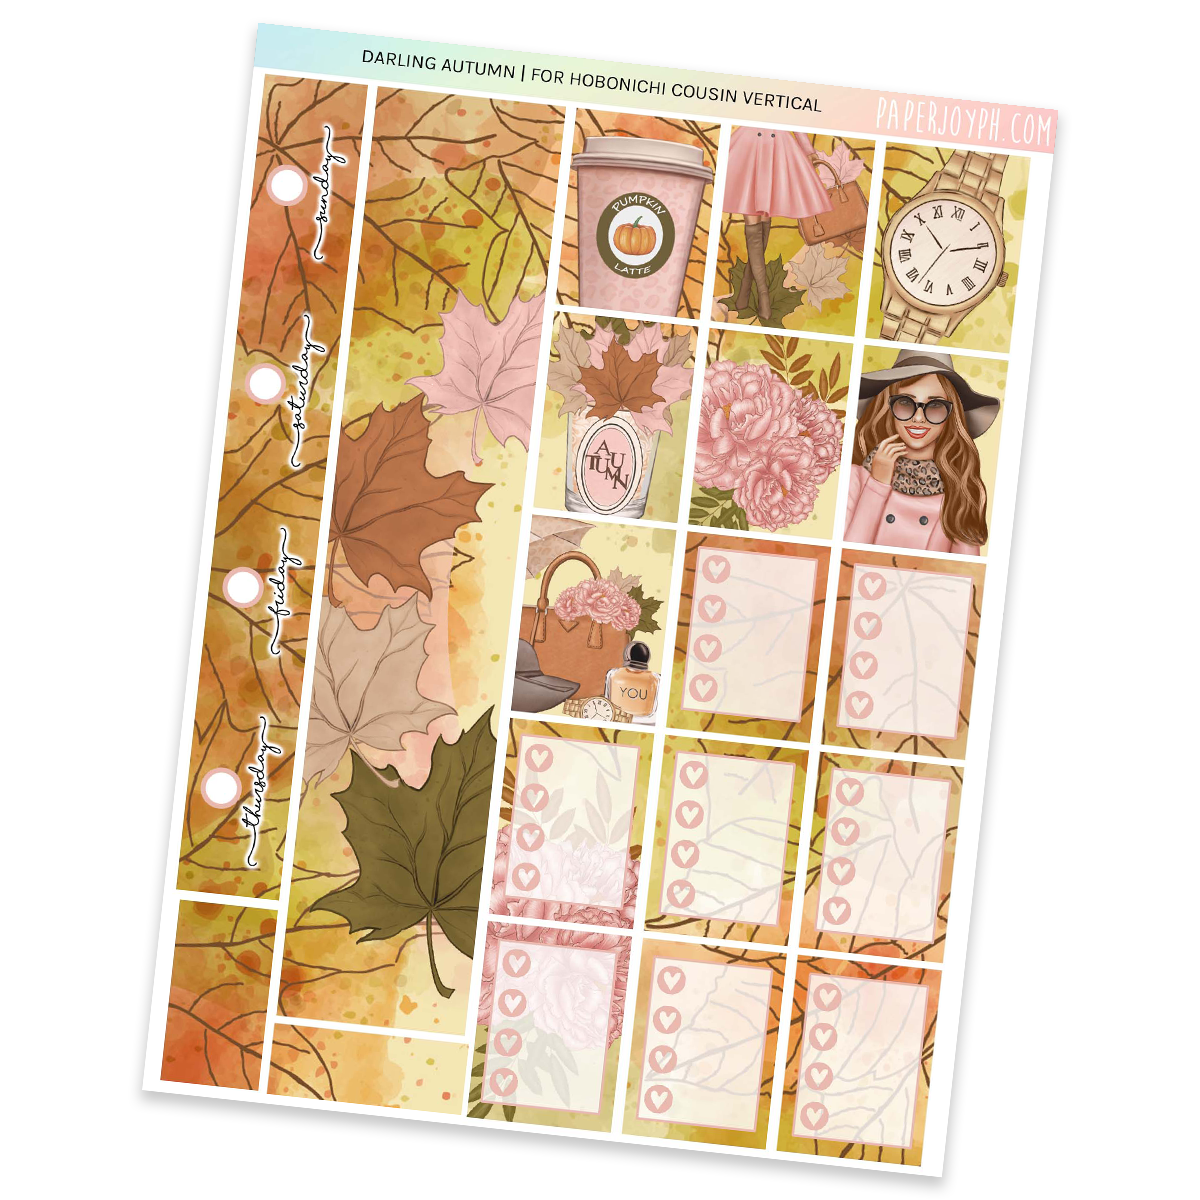 HOBONICHI COUSIN | VERTICAL STICKER KIT | DARLING AUTUMN